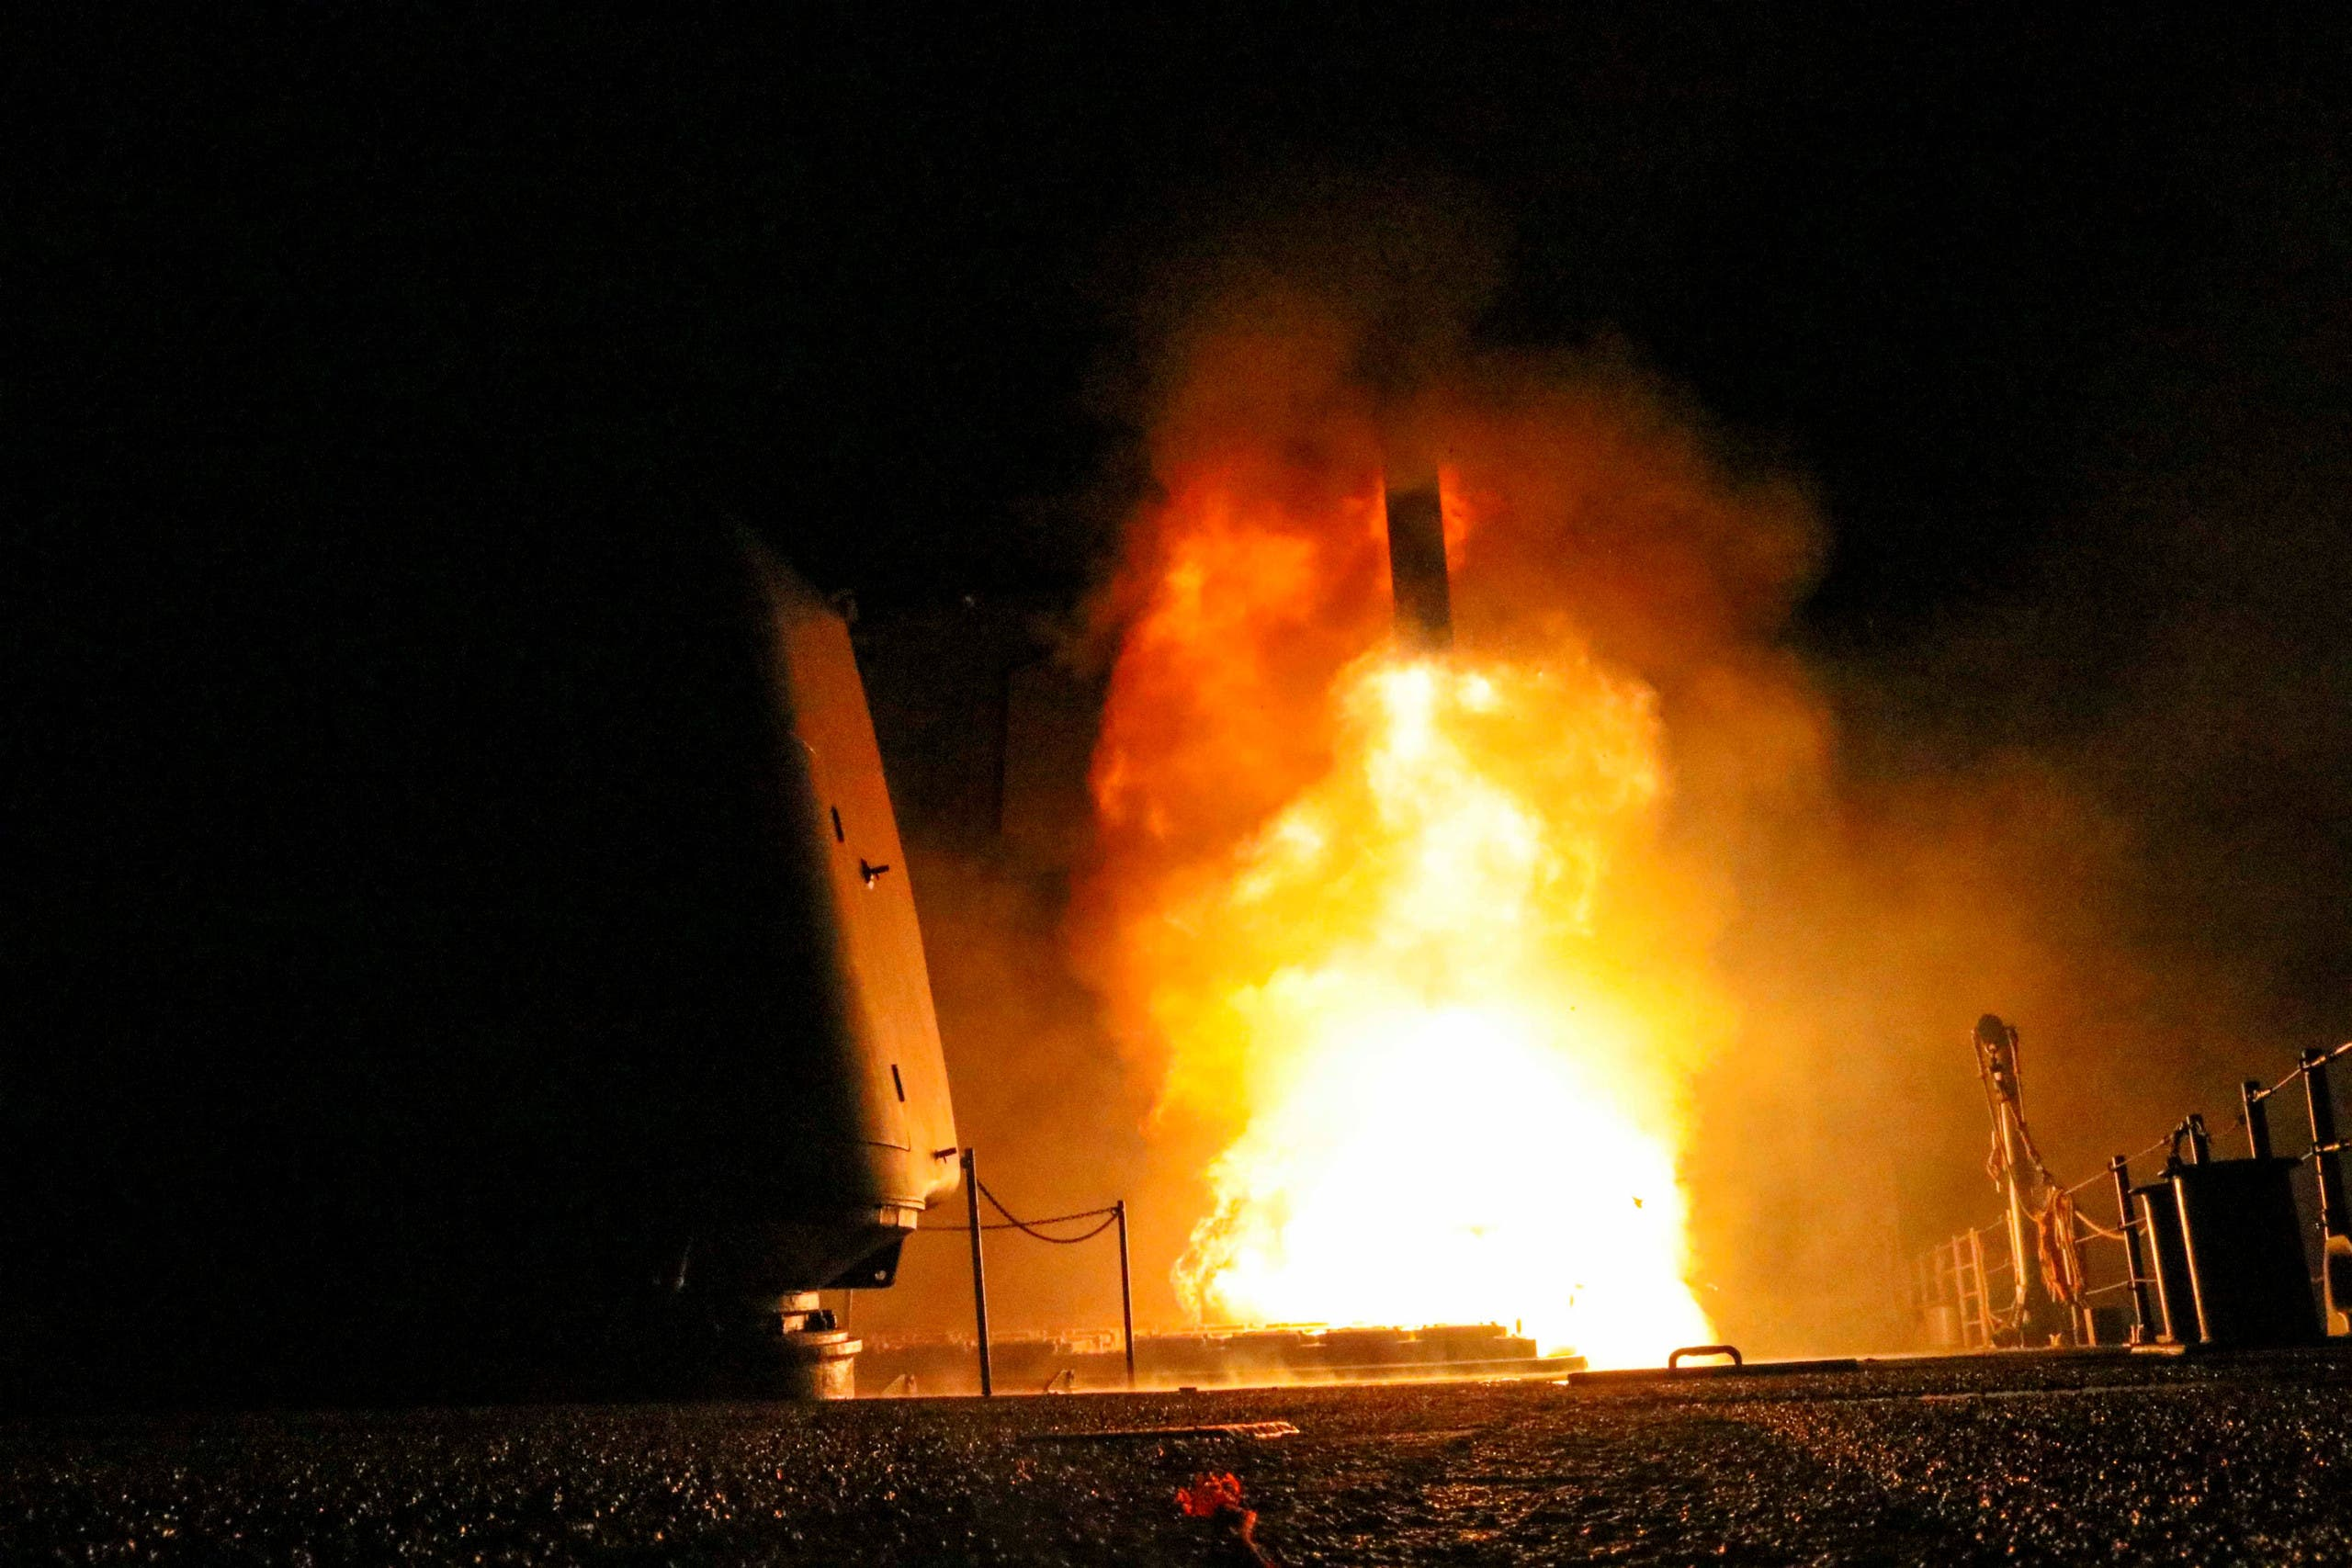 The U.S. Navy guided-missile cruiser USS Monterey fires a Tomahawk land attack missile April 14, 2018. U.S. Navy/Lt. j.g Matthew Daniels/Handout via REUTERS. ATTENTION EDITORS - THIS IMAGE WAS PROVIDED BY A THIRD PARTY